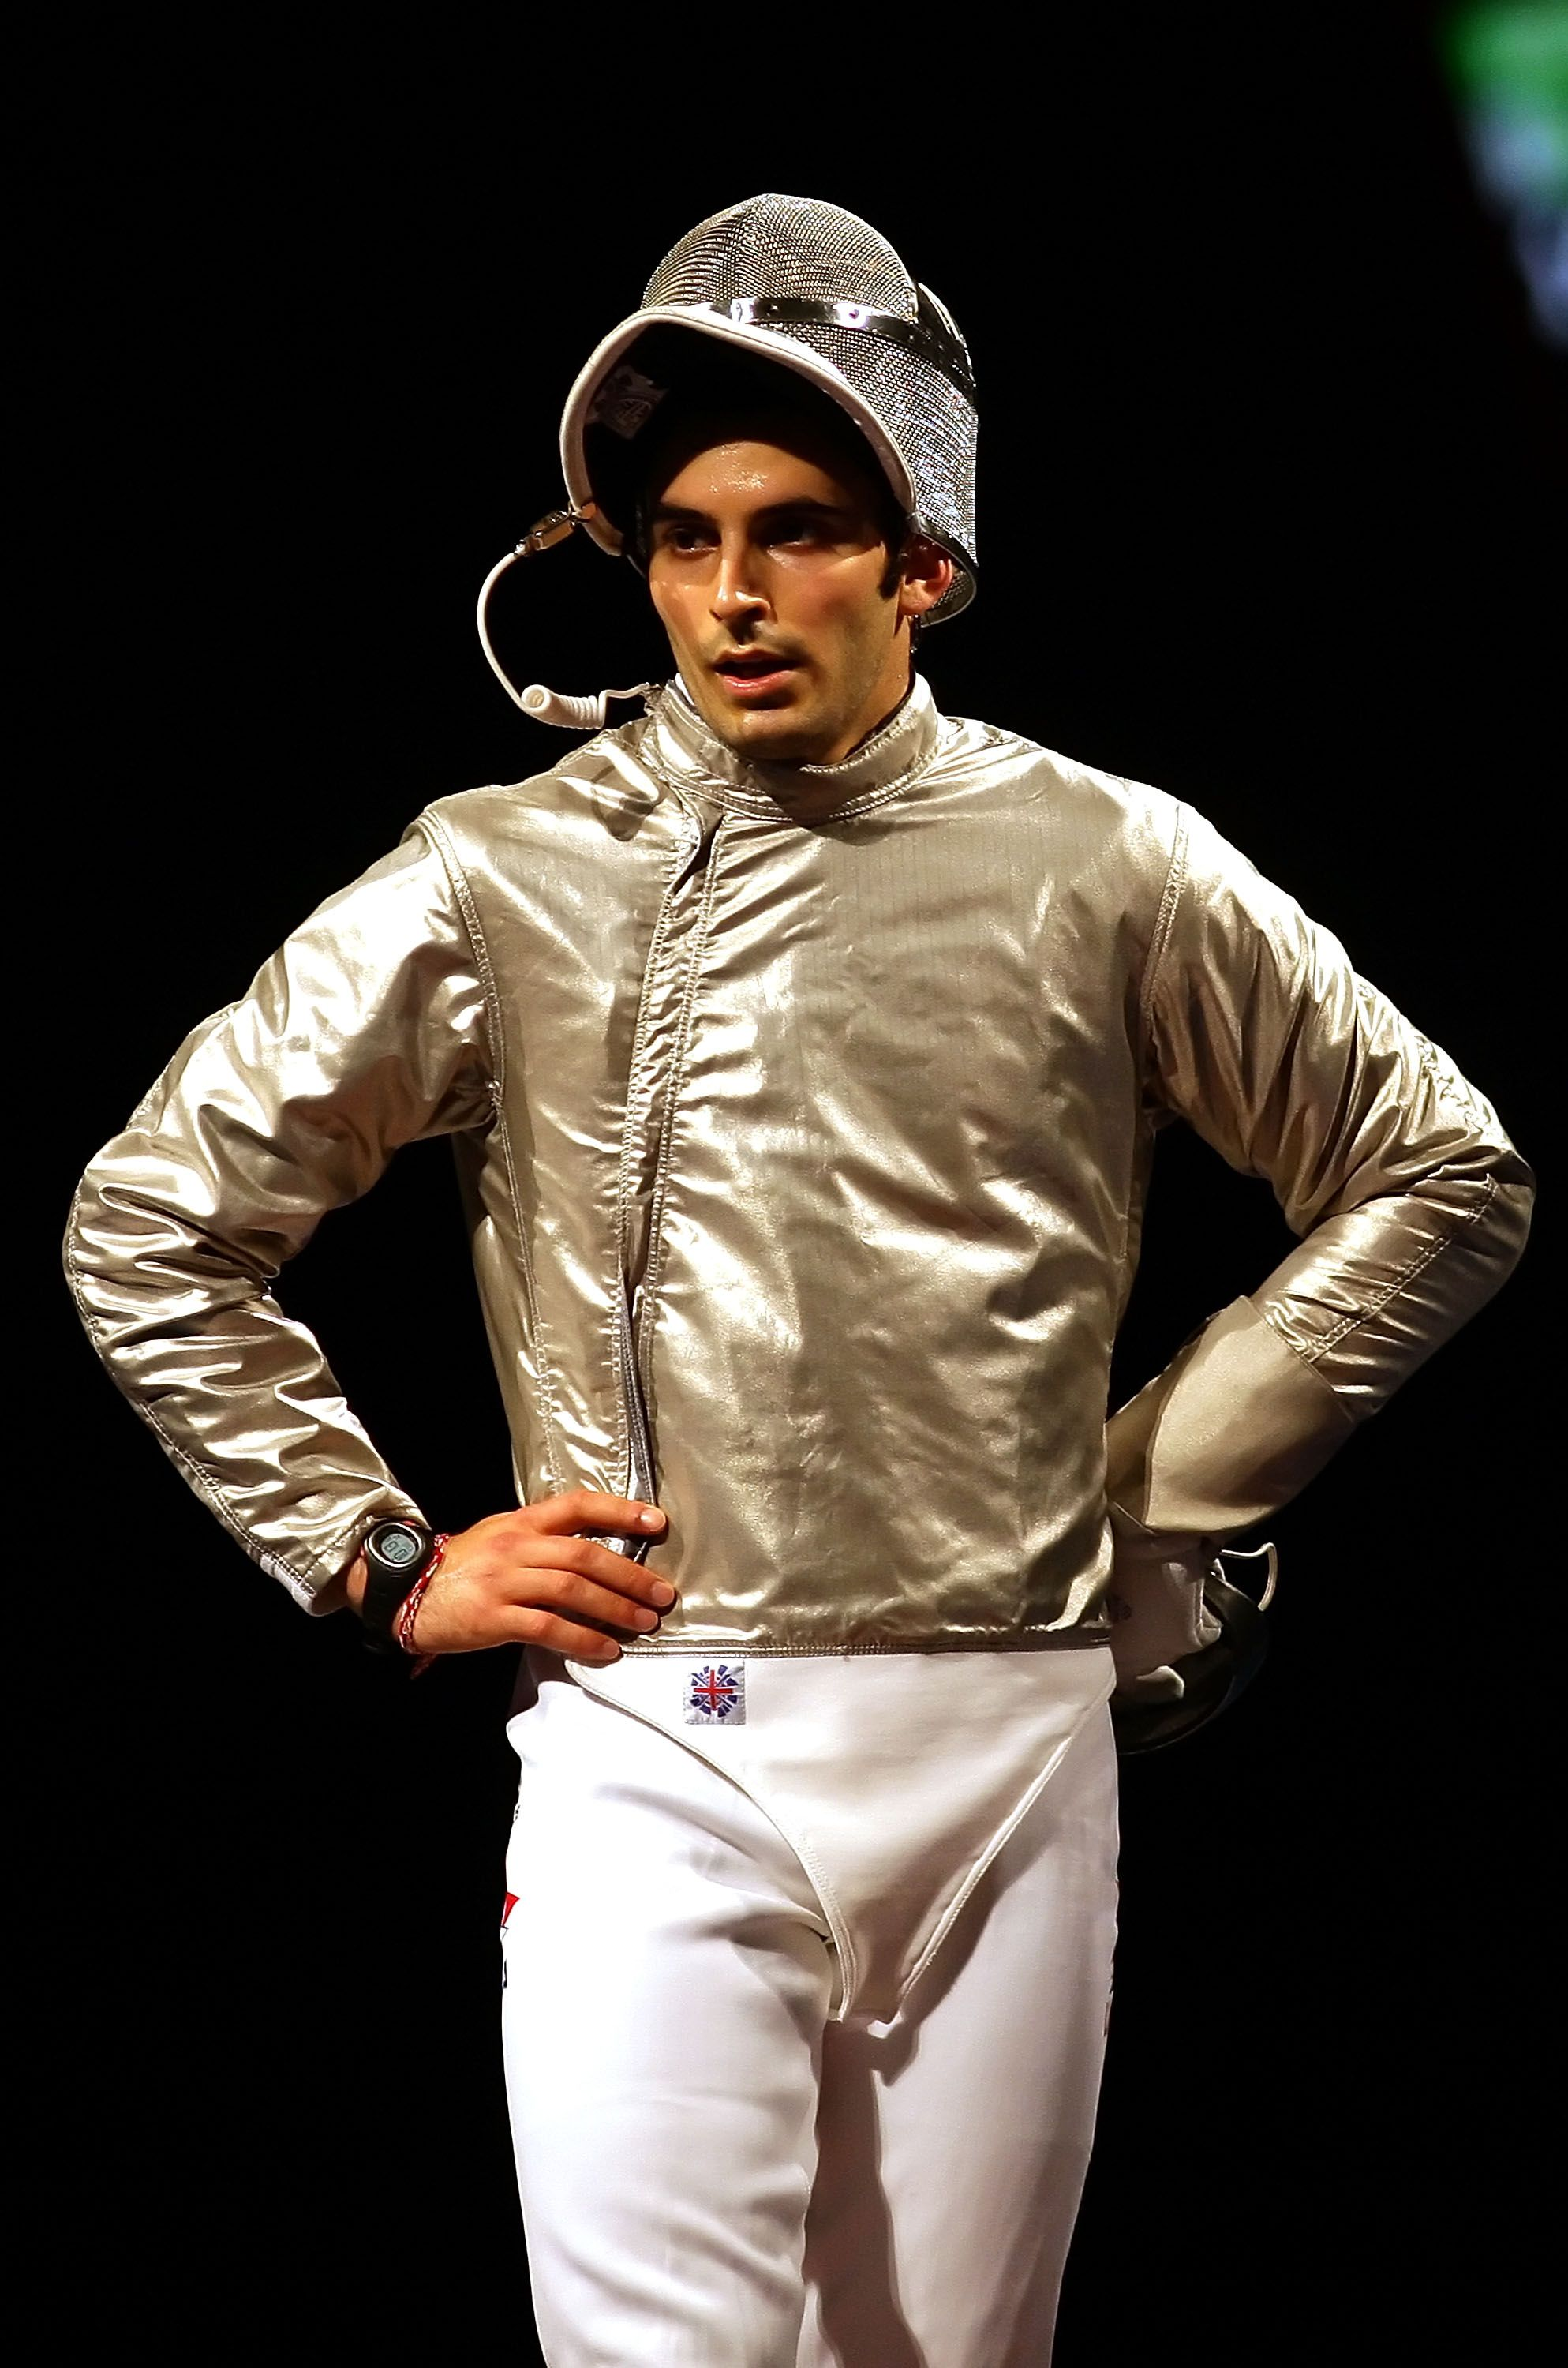 Jason Rogers Won a Medal in Fencing at the Beijing Olympics. But His Toughest Battle Was in the Bedroom.